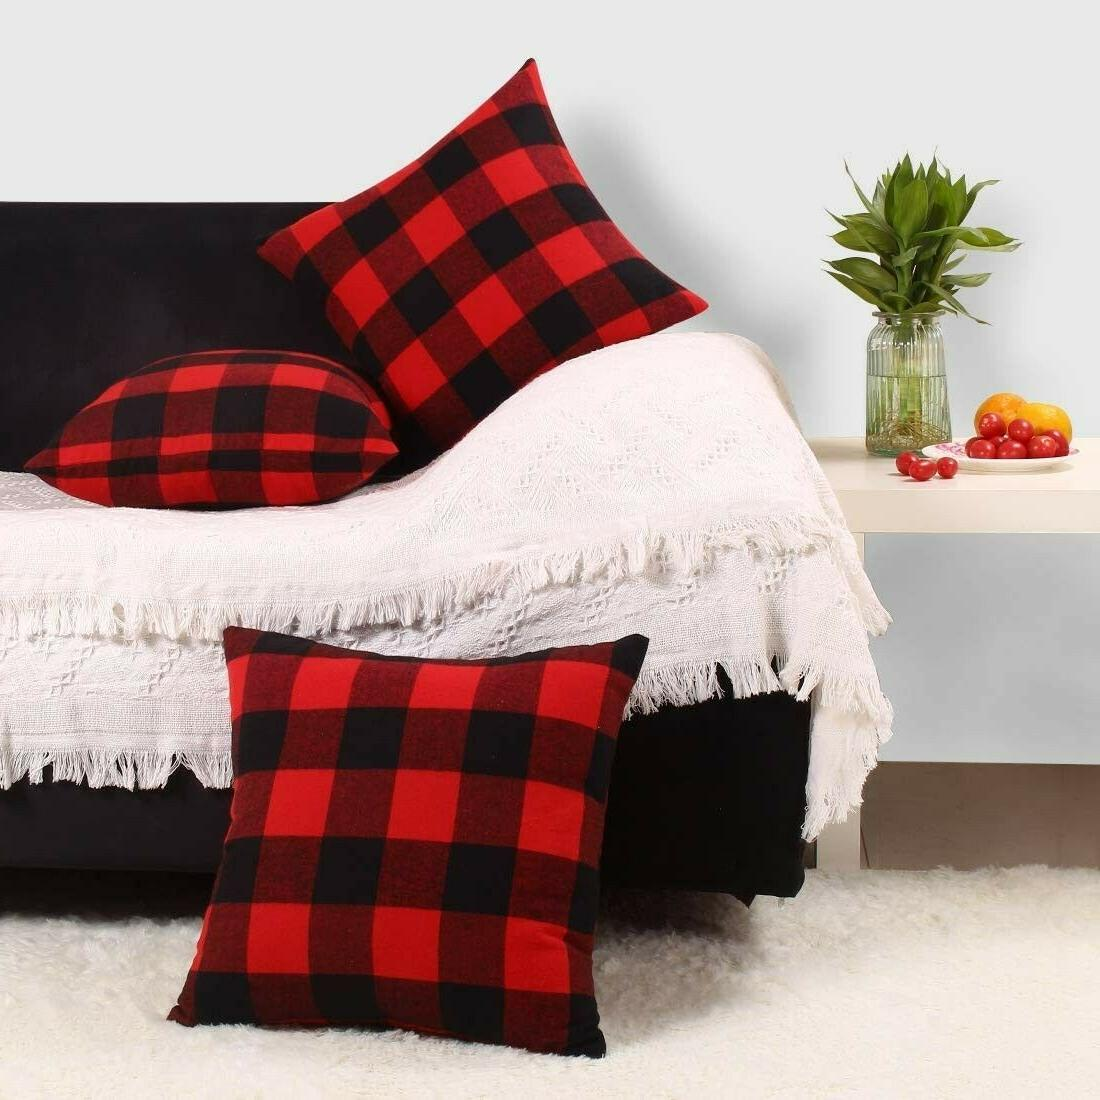 3 Pillow Cases Throw Covers Xmas Decoration